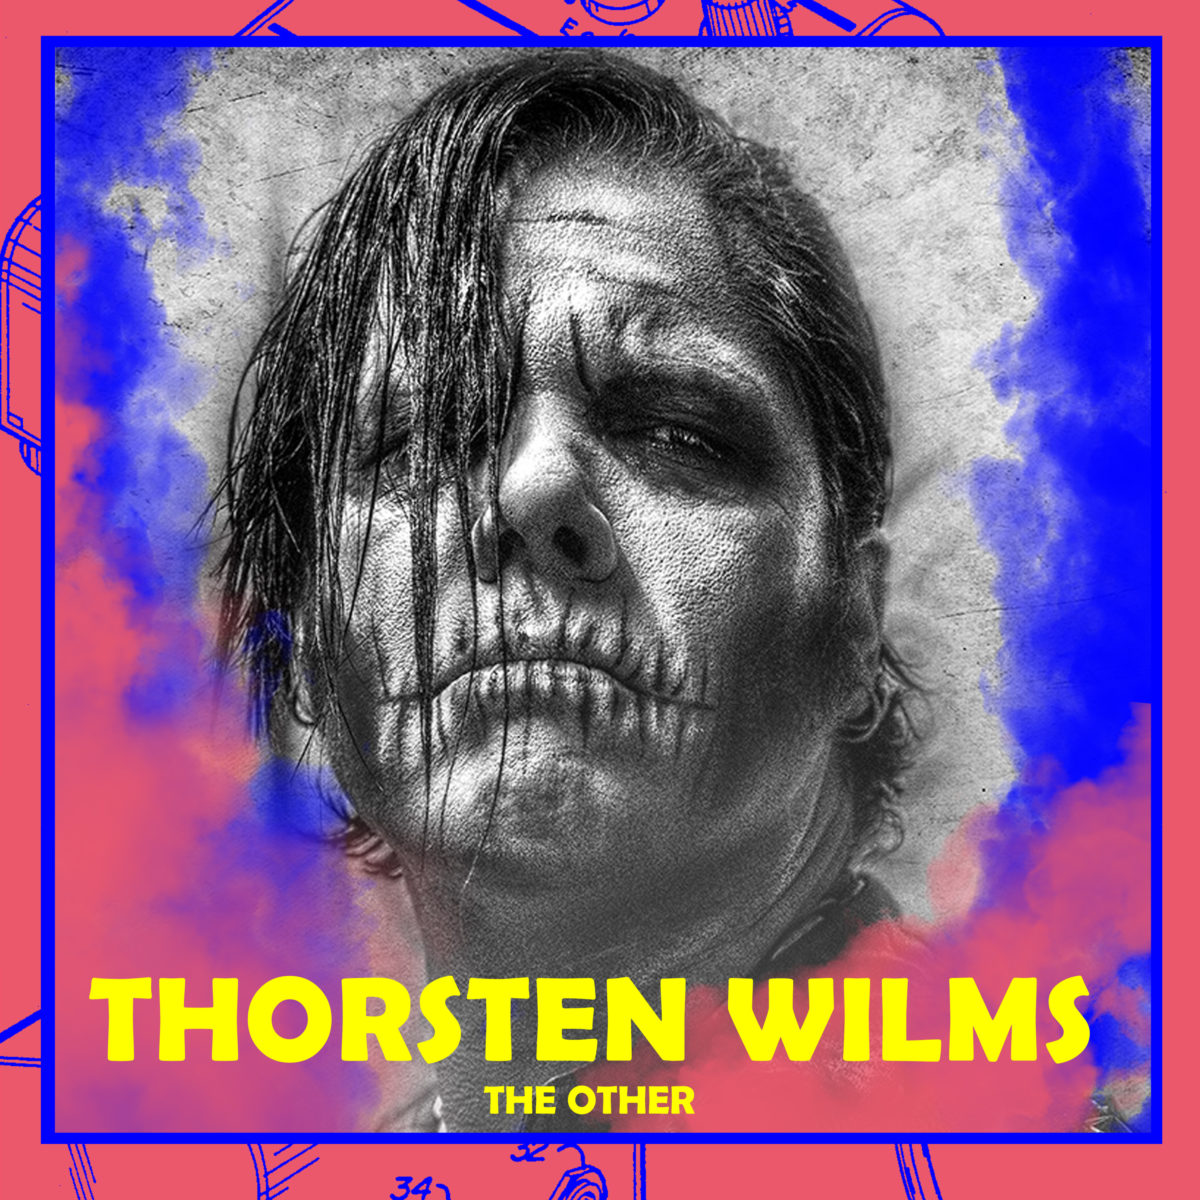 Thorsten Wilms (The Other)